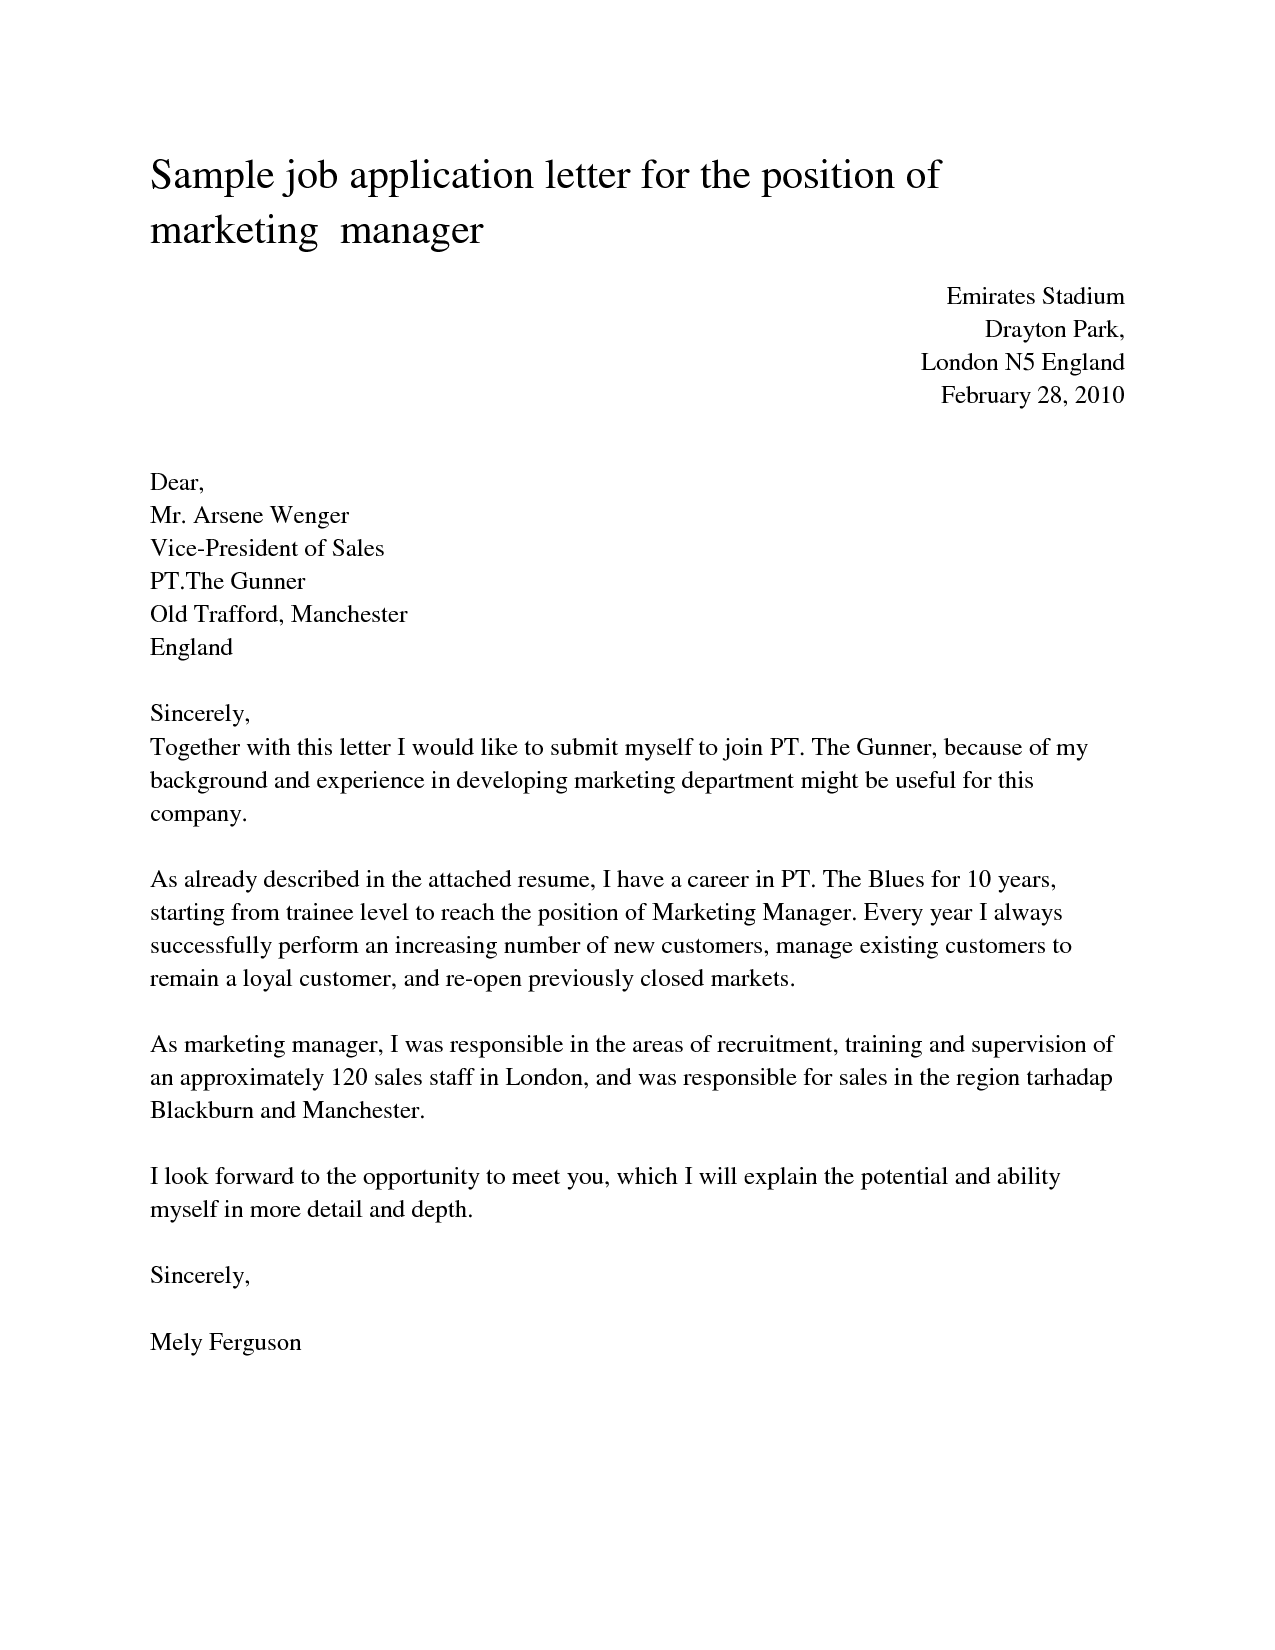 Sample letter of application letter for bank job bank job application letter cover letter samples cover altavistaventures Gallery